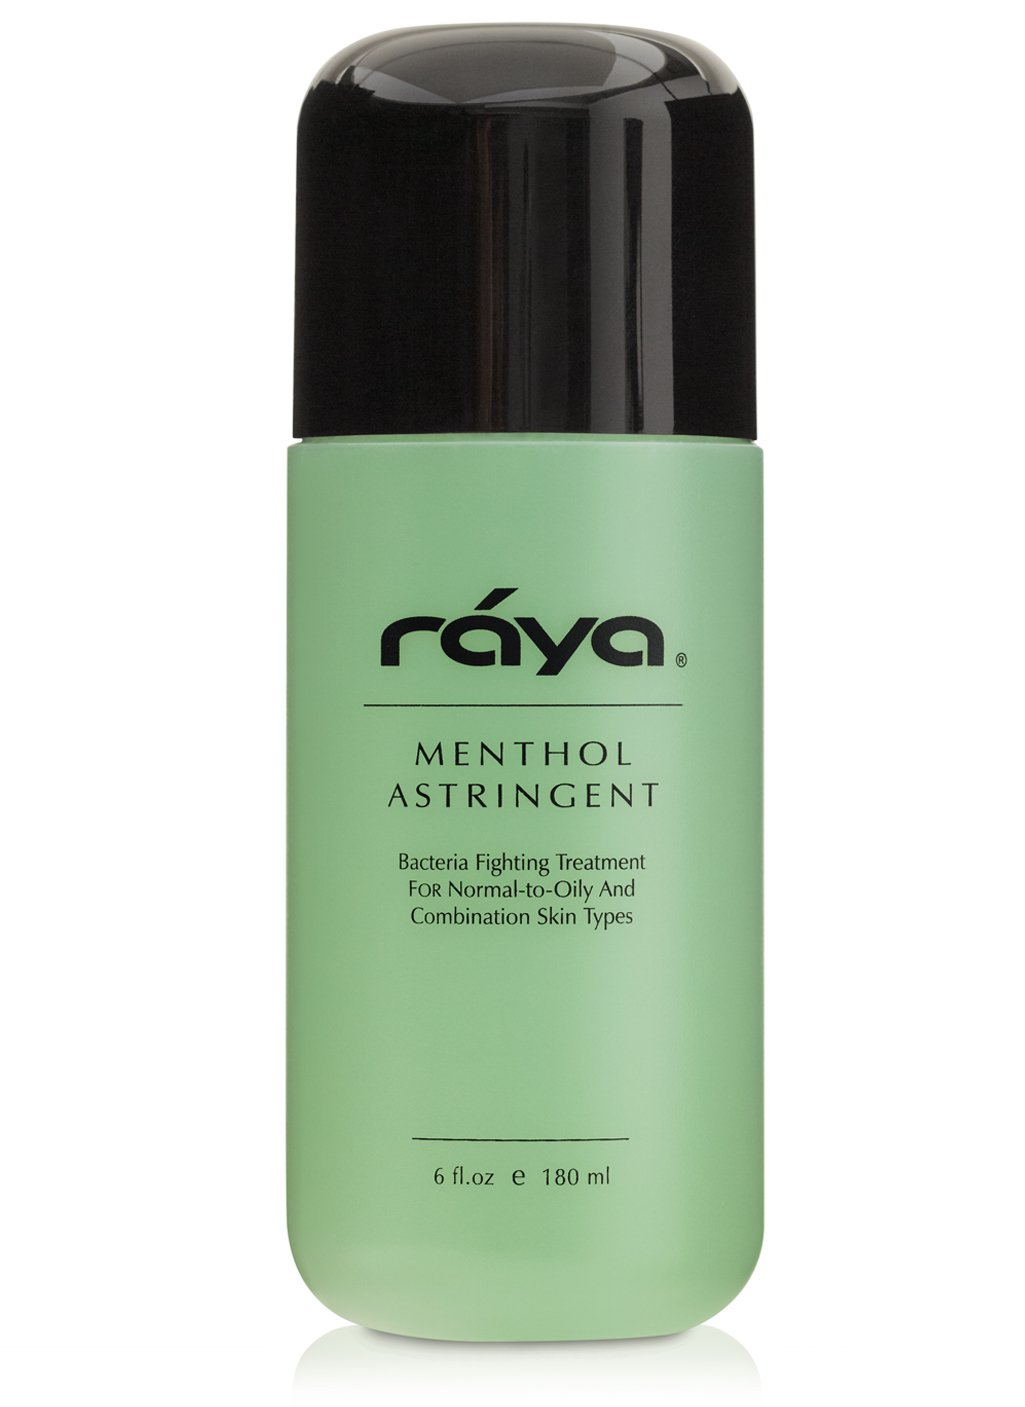 RAYA Menthol Astringent 6 oz (203) | Effective Facial Toner for Combination and Partially Oily Skin Prone to Break-Outs | Helps Refine, Tighten, and Protect pH Balance | Cools, Refreshes and Soothes